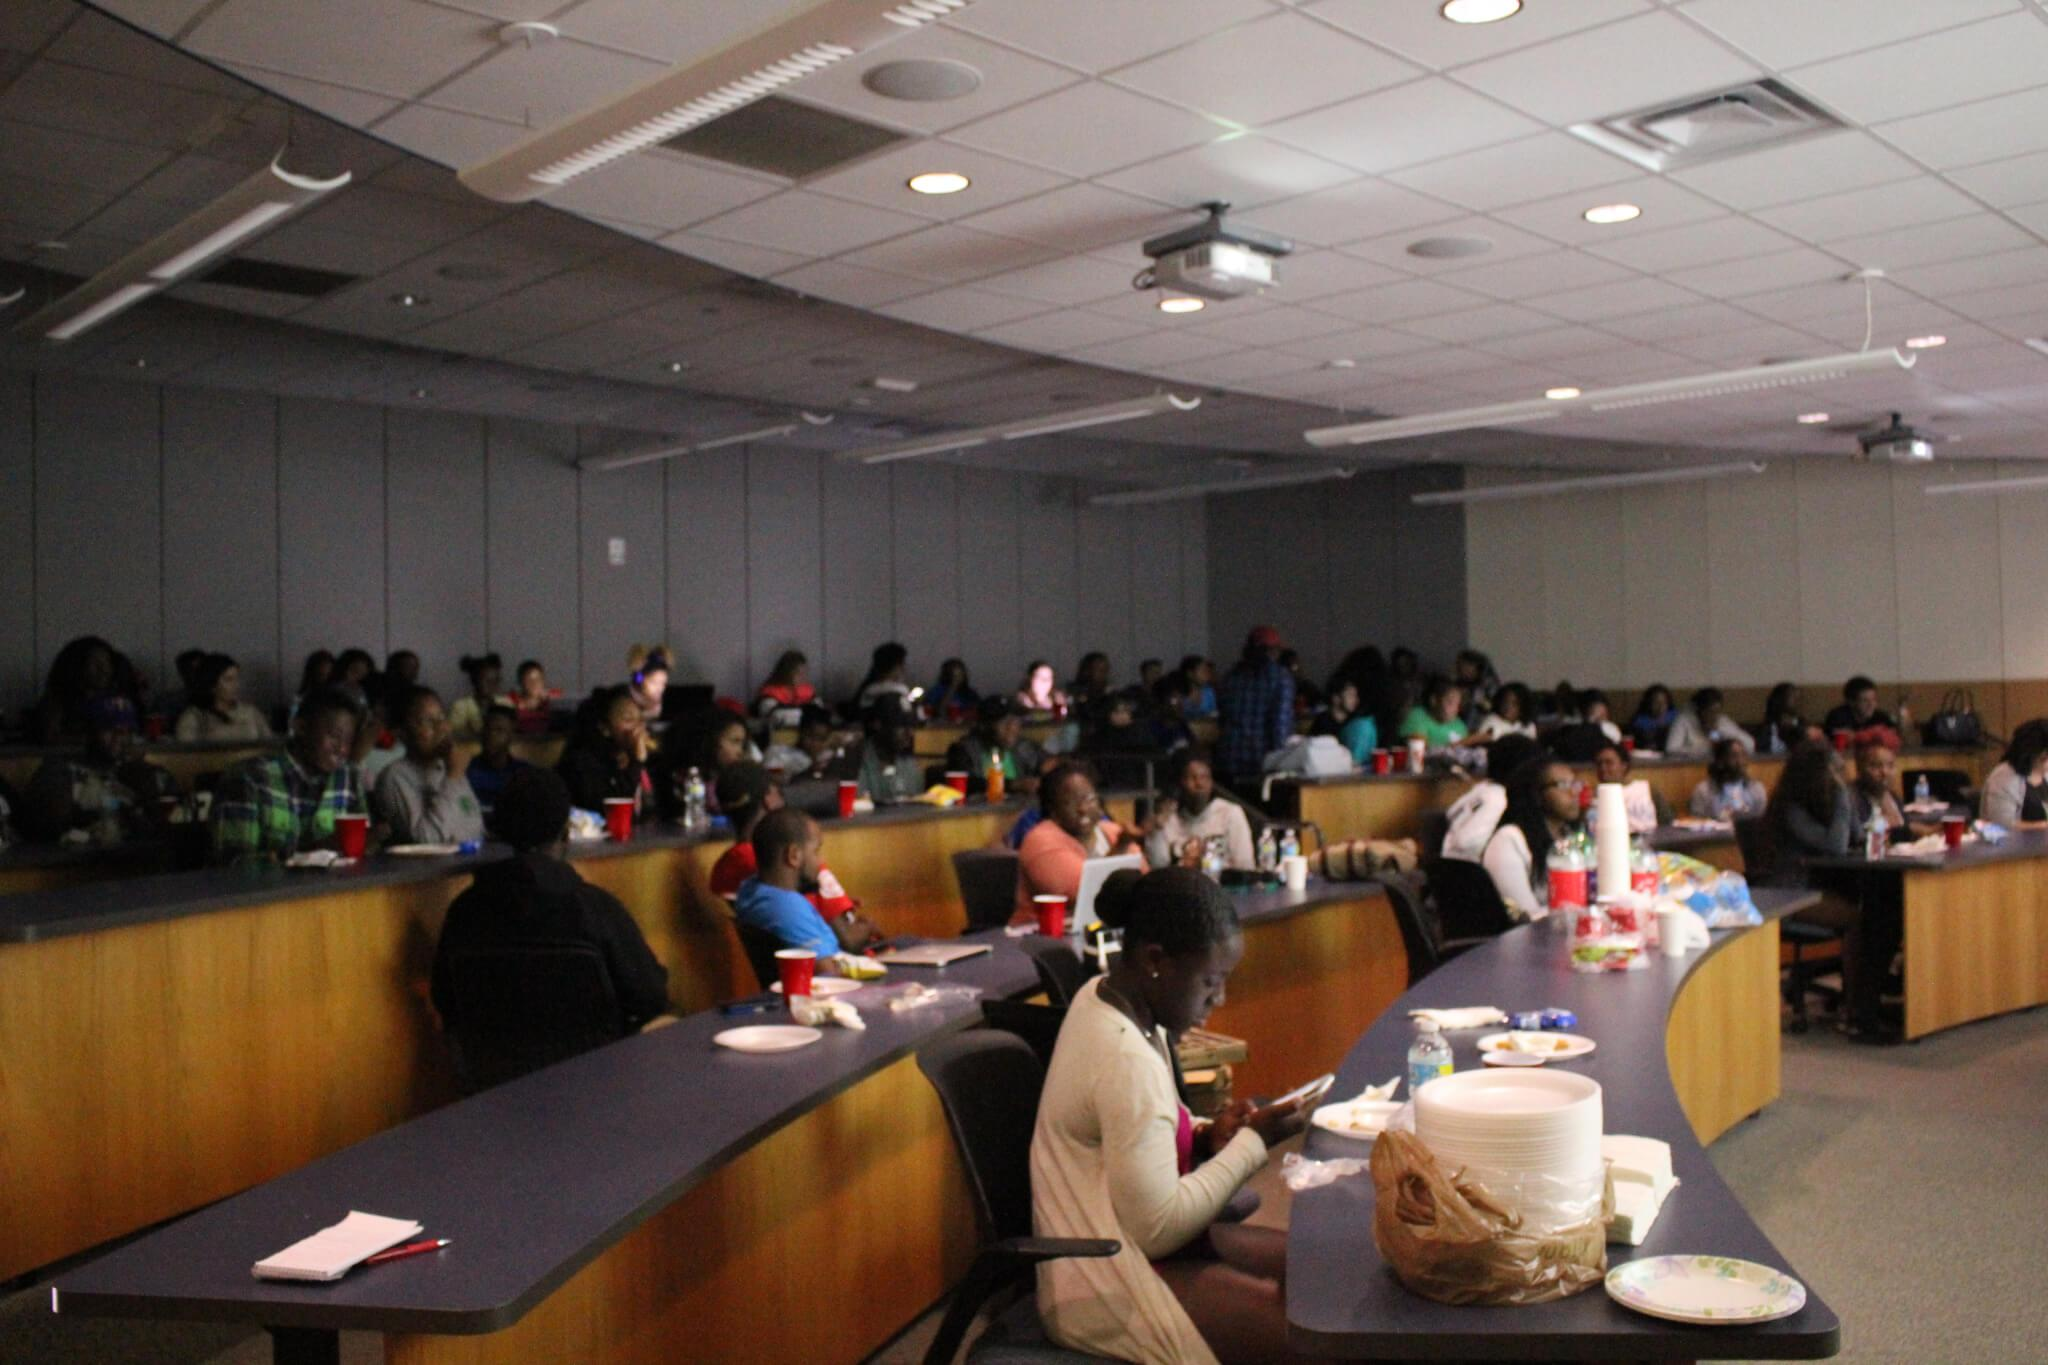 COBOL brings community  together at election viewing party